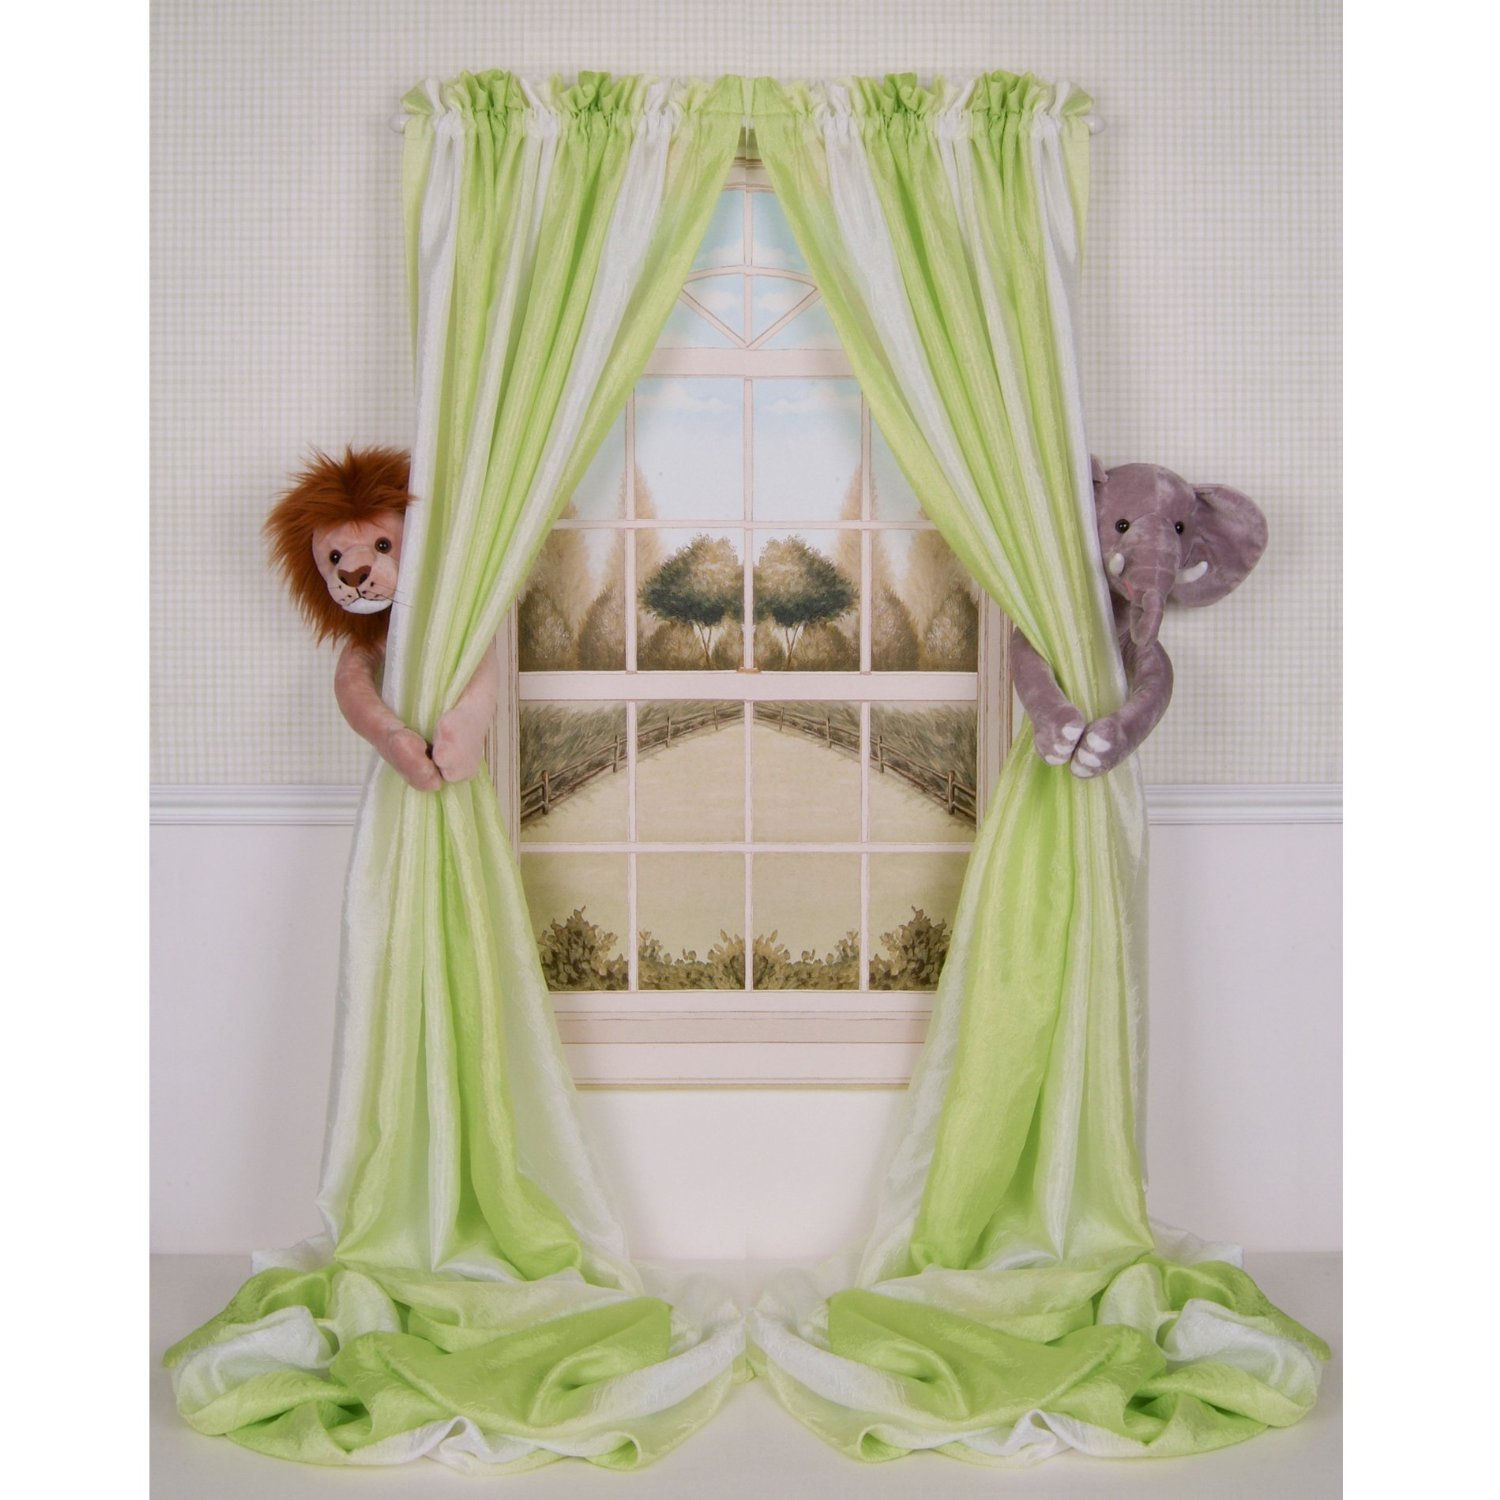 Curtain Critters- Plush Jungle Safari Elephant And Lion Curtain Tieback, Car Seat, Stroller, Crib Toys Collector Set Curtain Critters Inc.